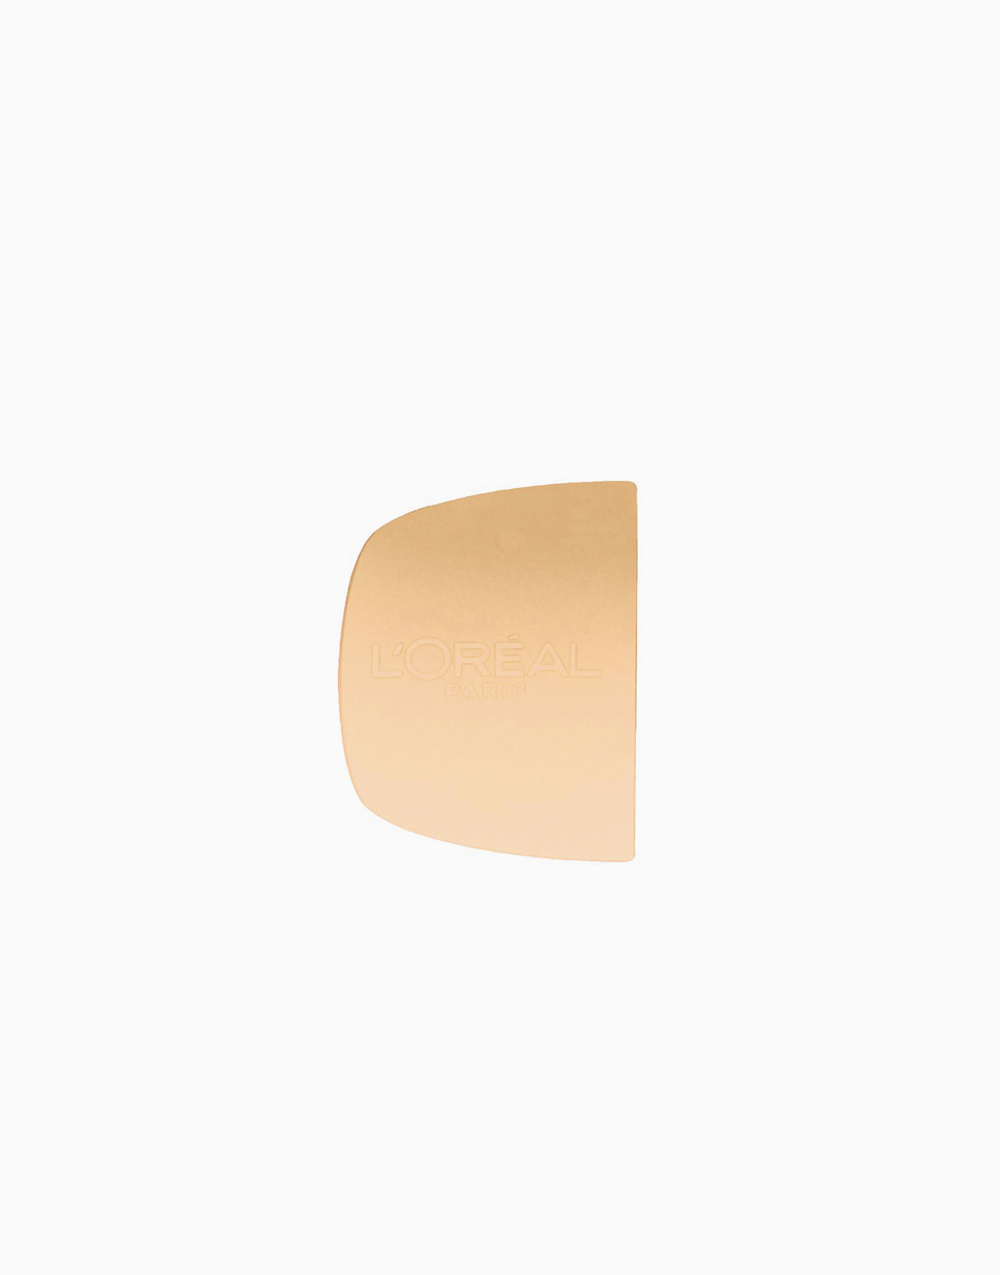 True Match Even Perfecting Powder Foundation Refill SPF32 PA+++ by L'Oréal Paris | G4 Gold Beige